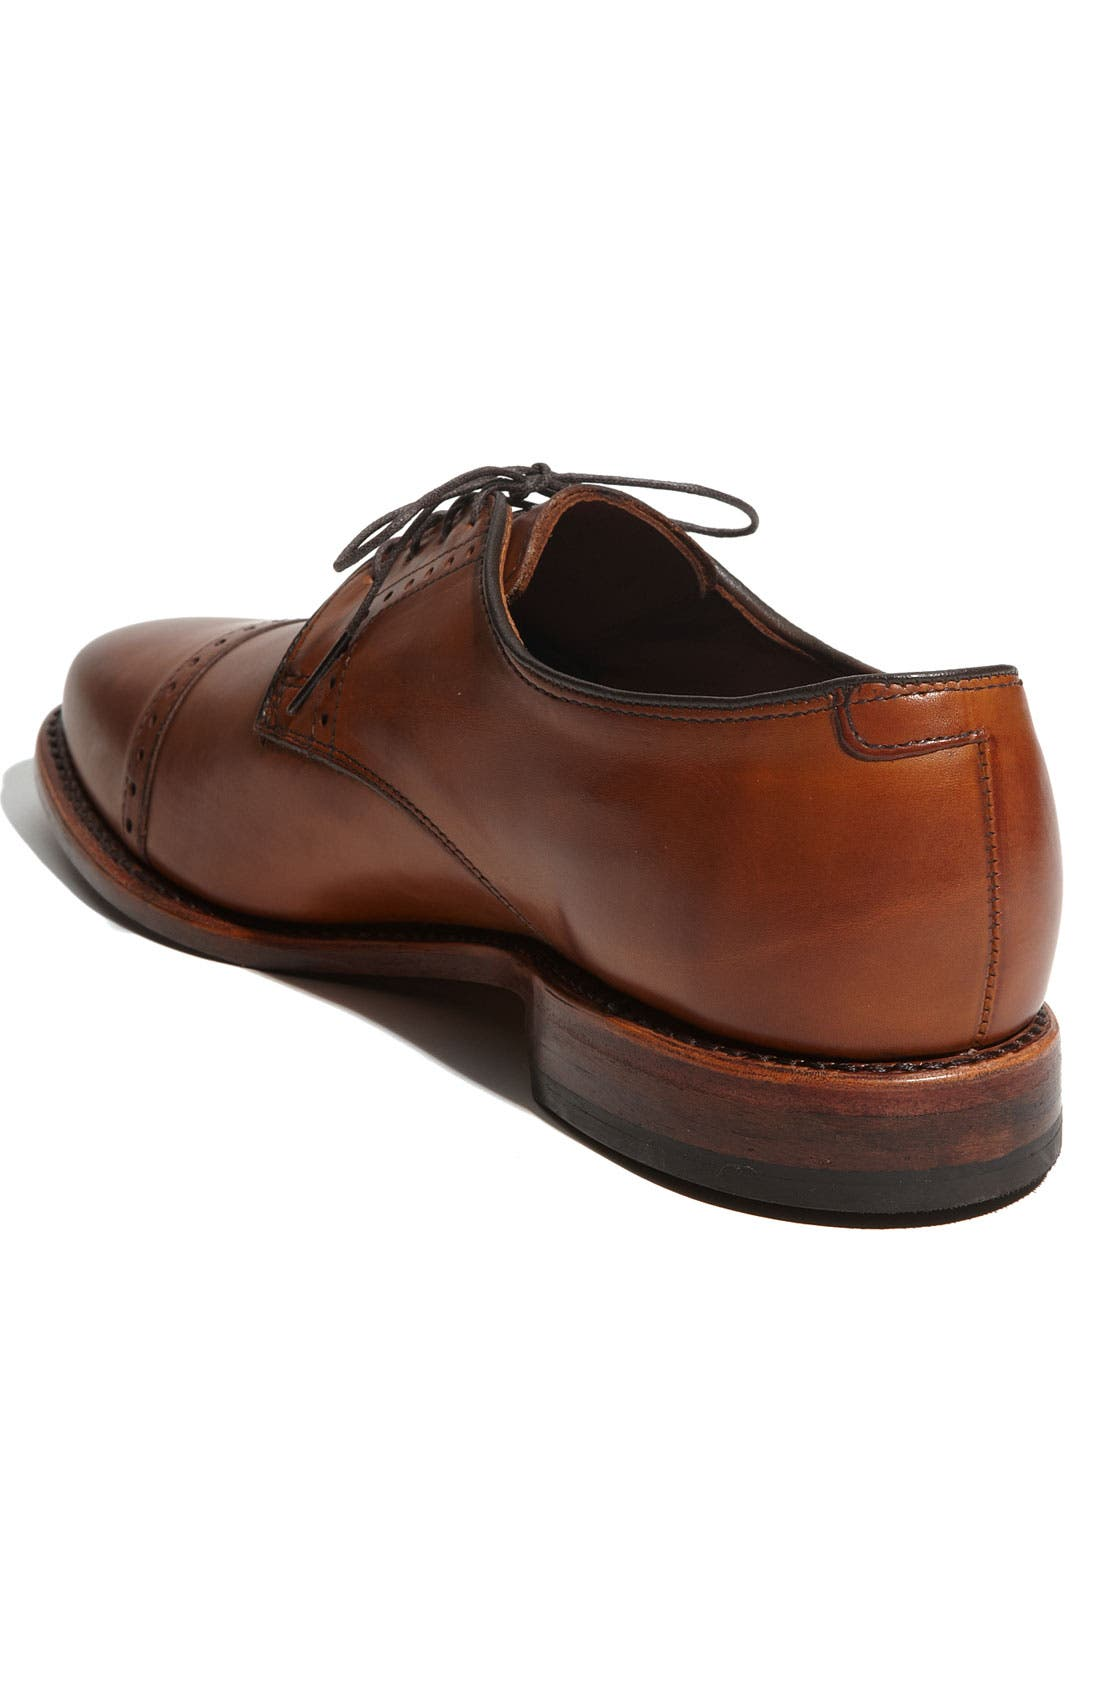 Alternate Image 2  - Allen Edmonds 'Clifton' Blucher (Men)